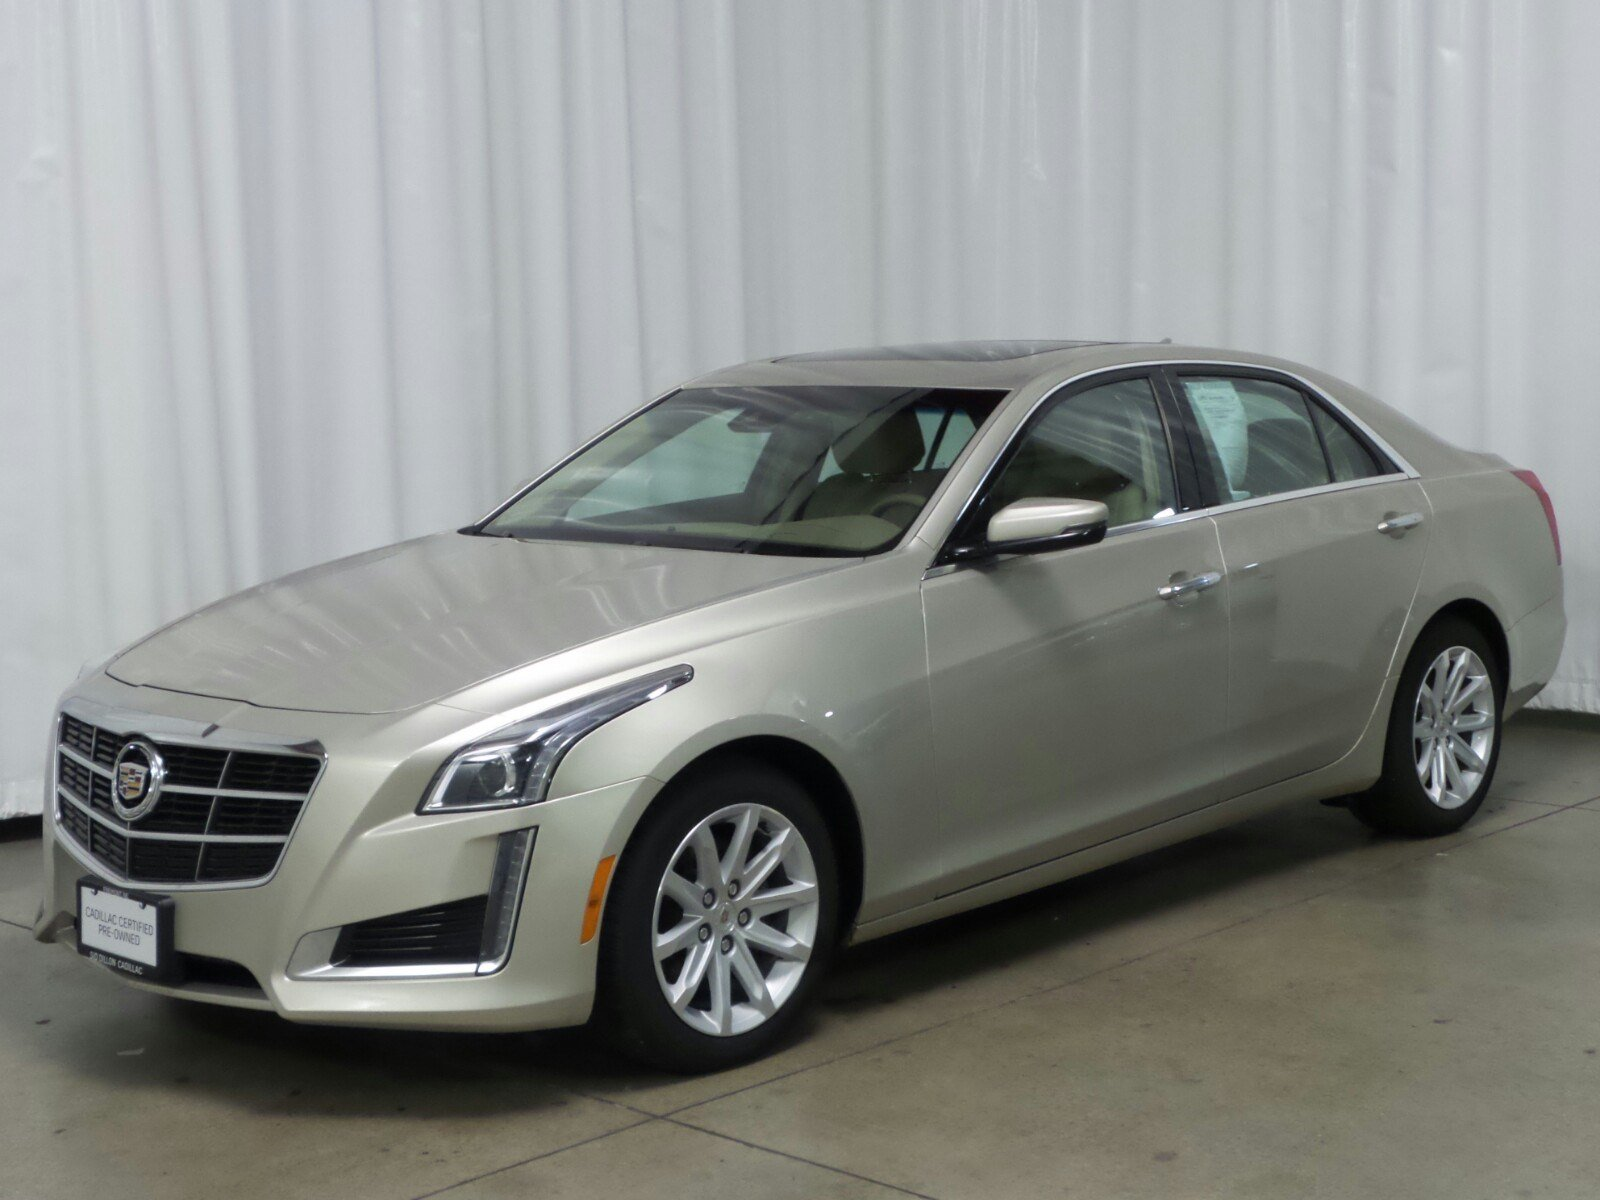 Certified Pre-Owned 2014 Cadillac CTS Luxury AWD